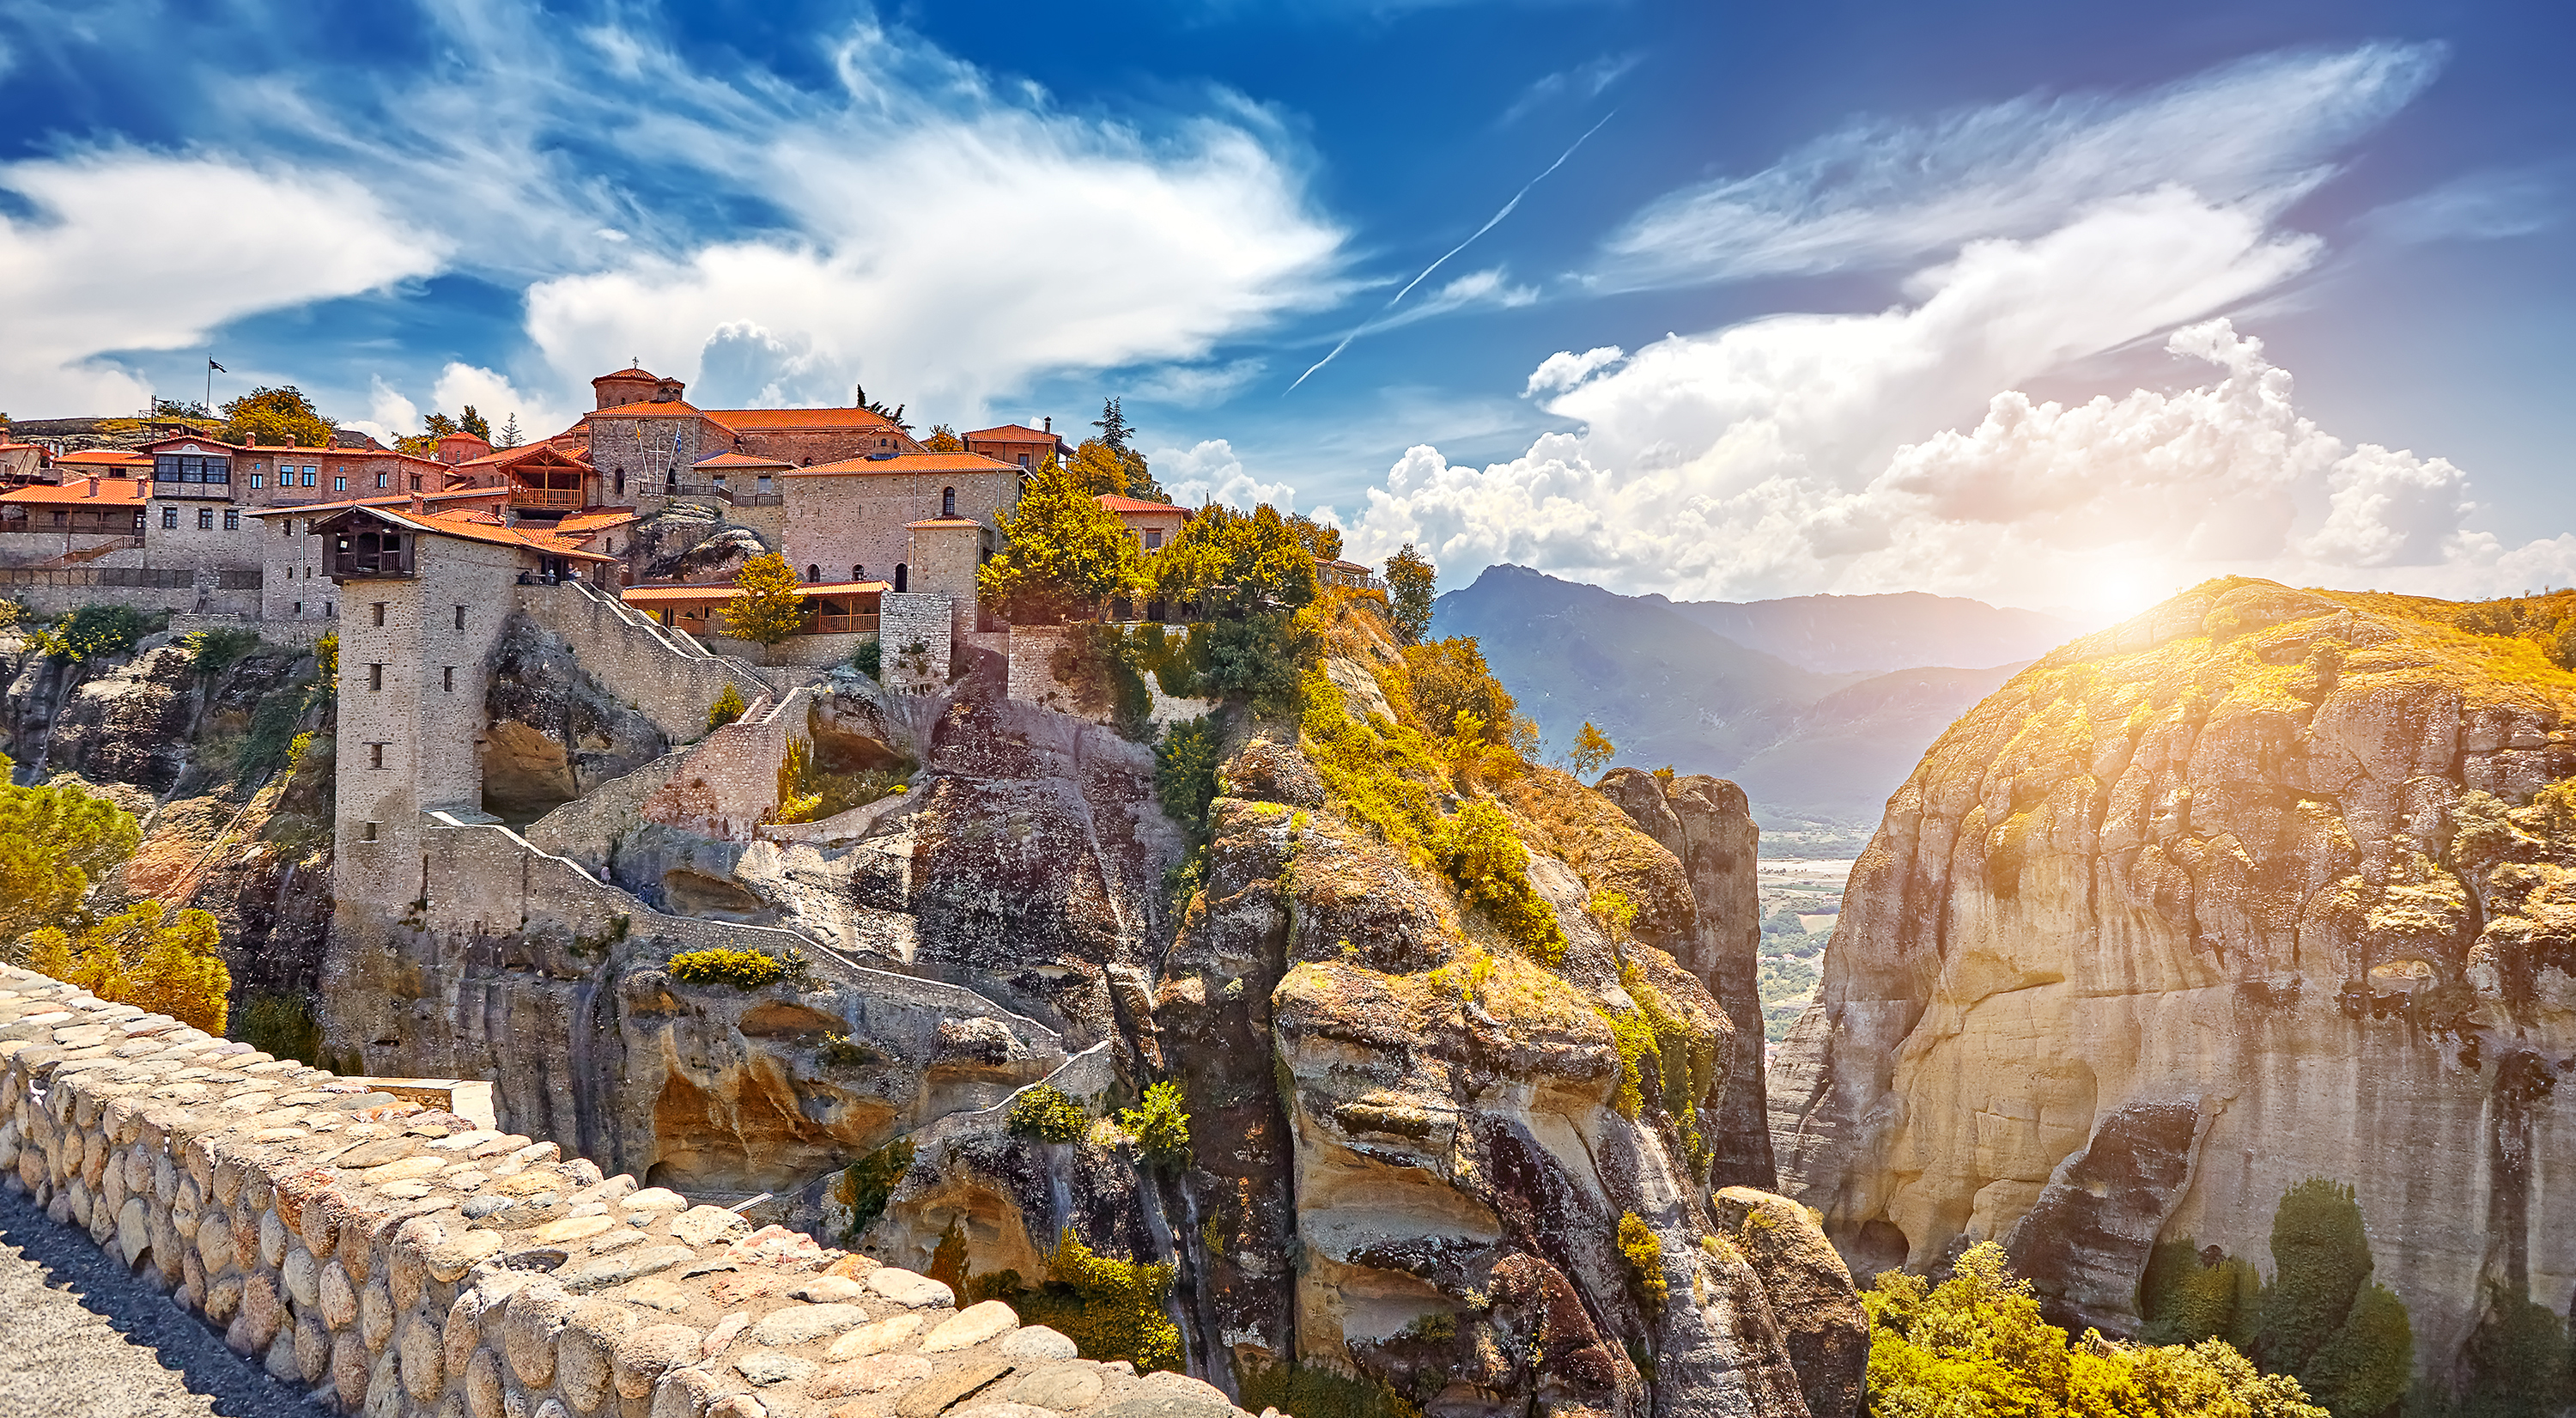 The Great Monastery of Varlaam on the high rock in Meteora